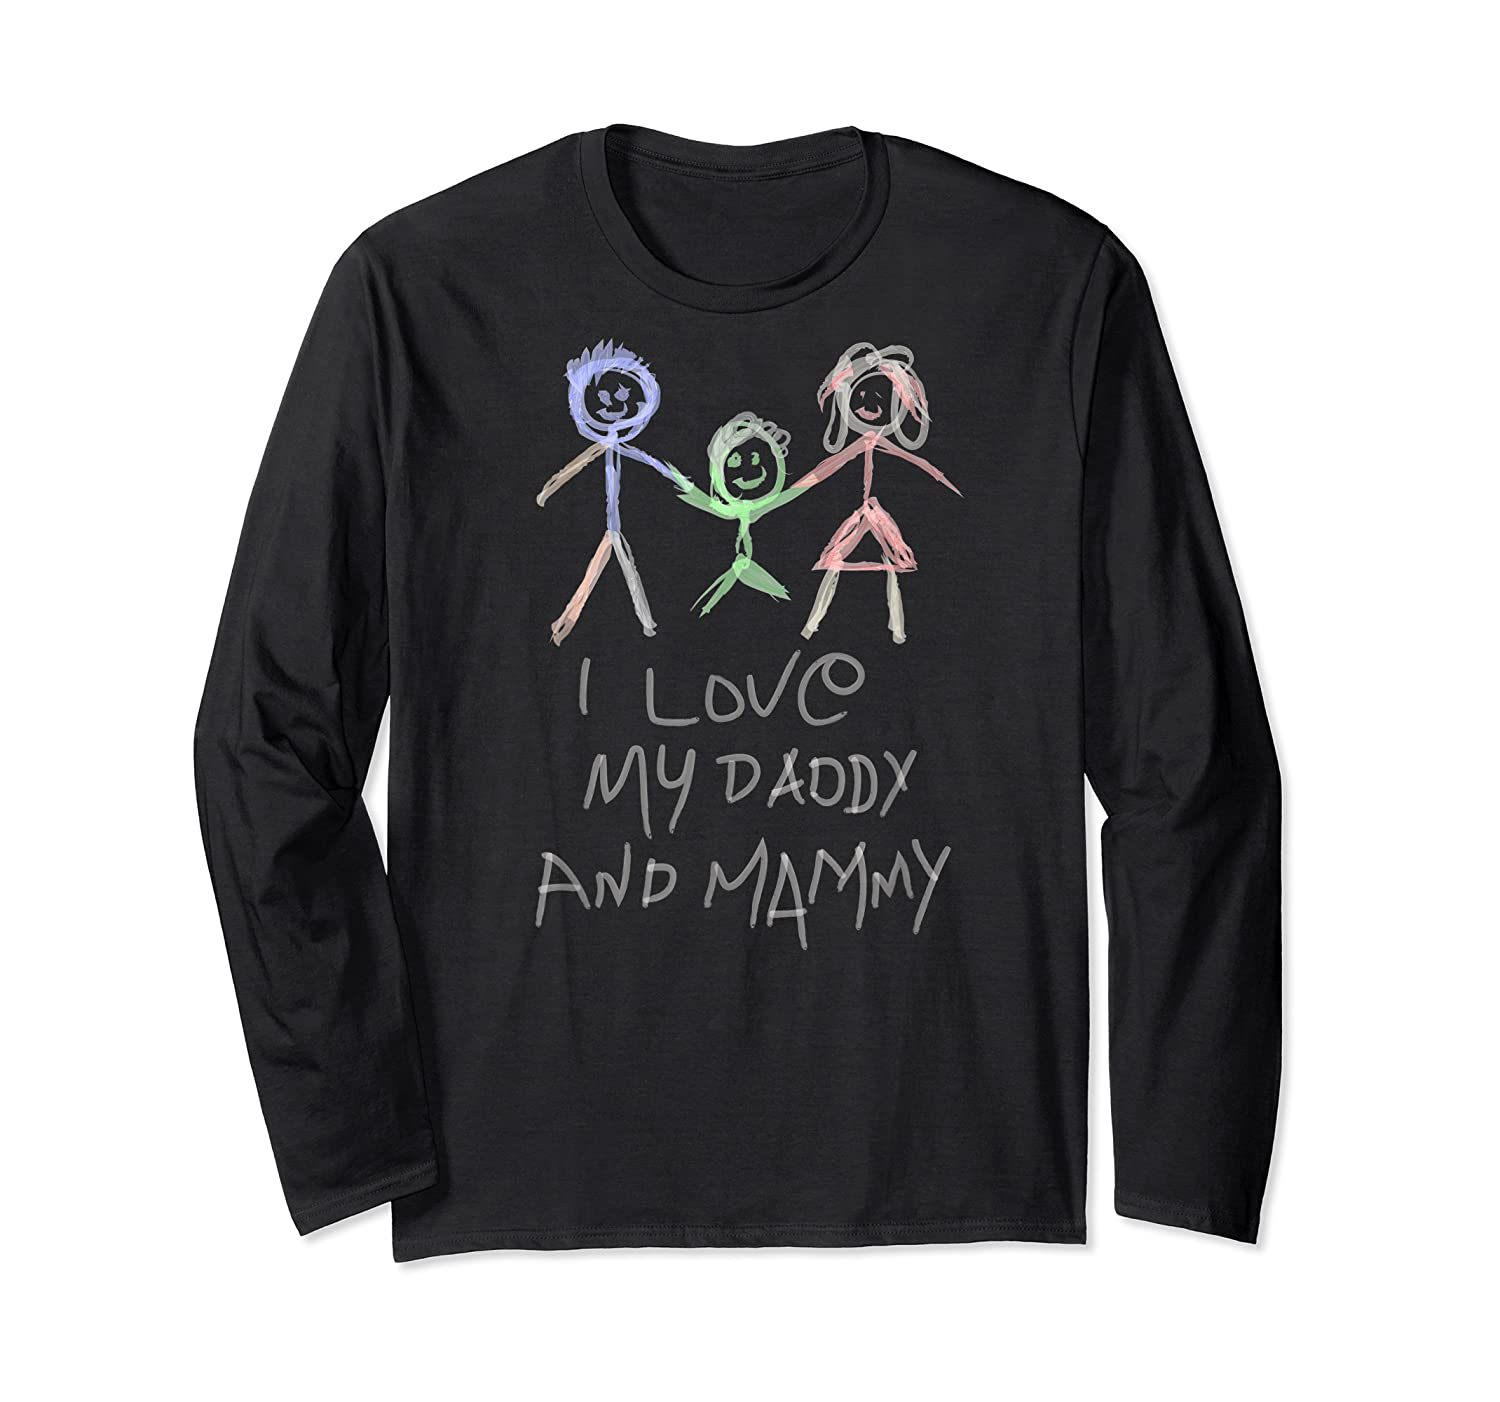 Happy Parents' Day Drawing Funny Shirts Long Sleeve T-shirt